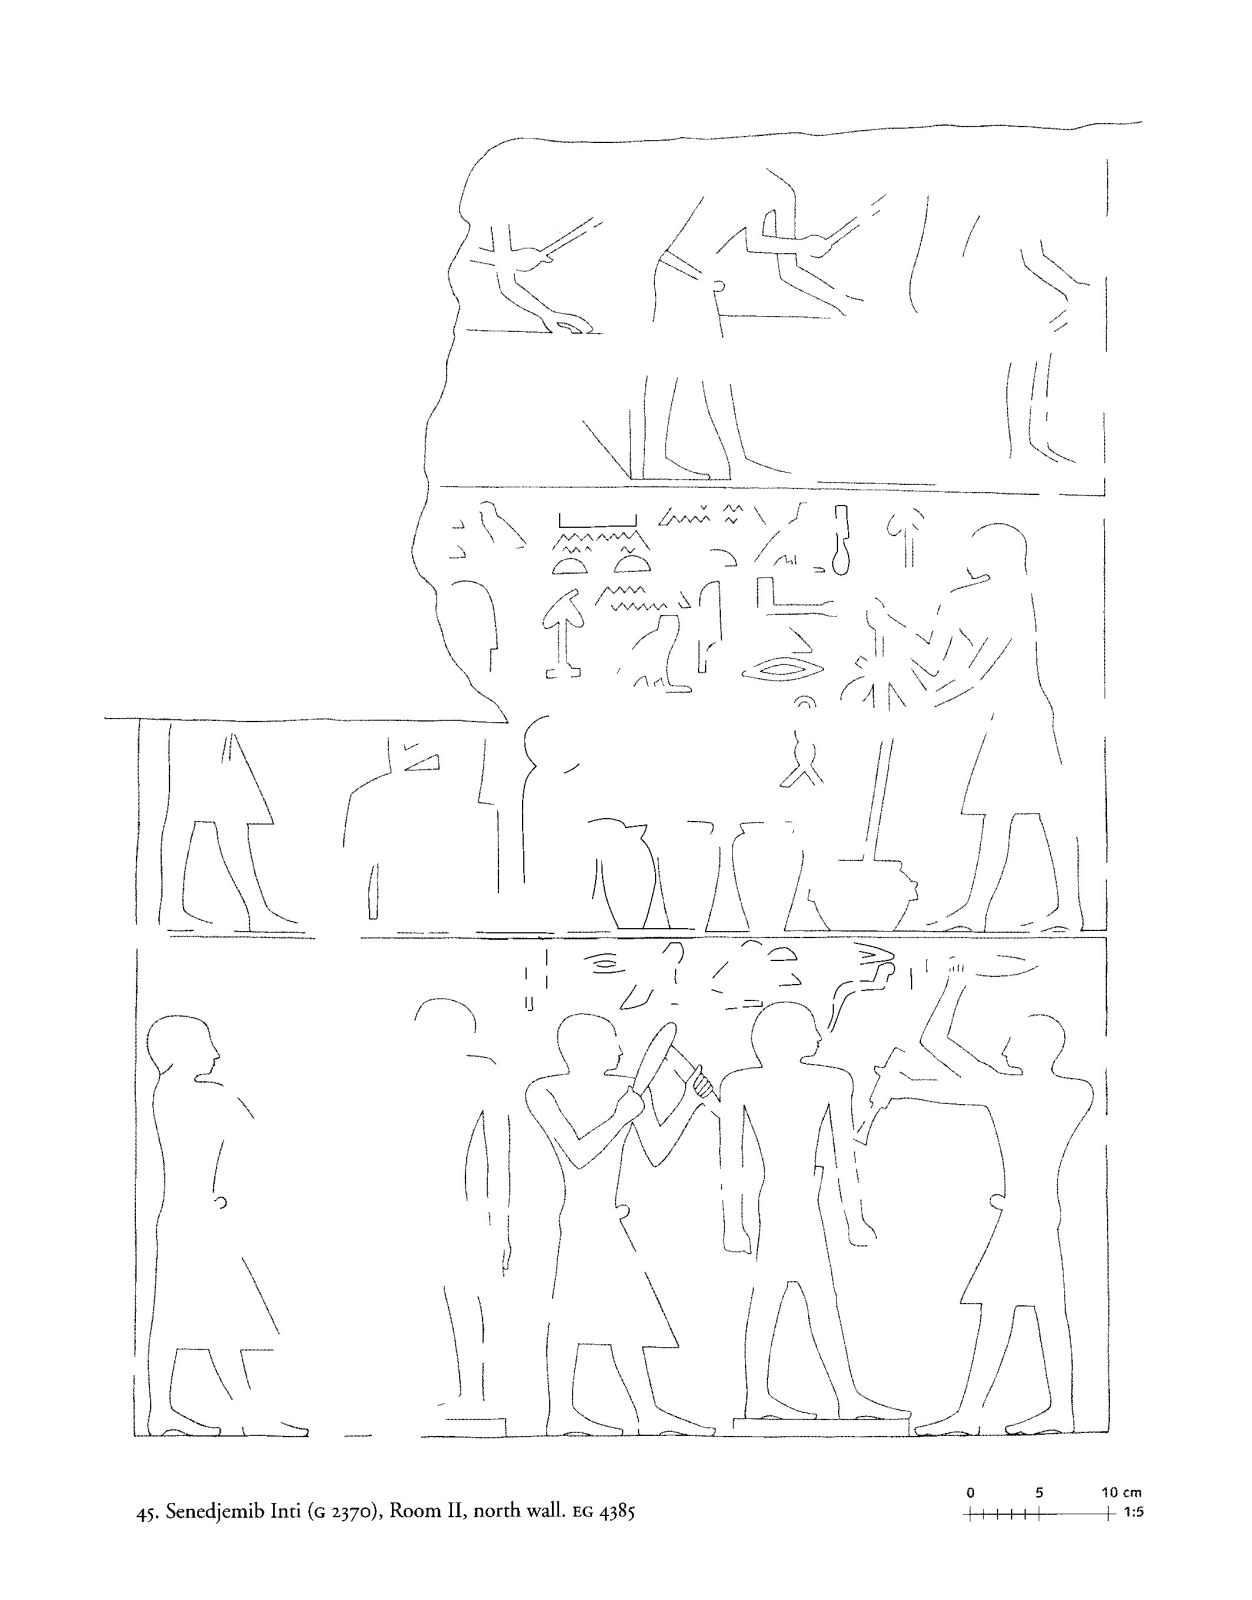 Drawings: G 2370: relief from Room II, N wall